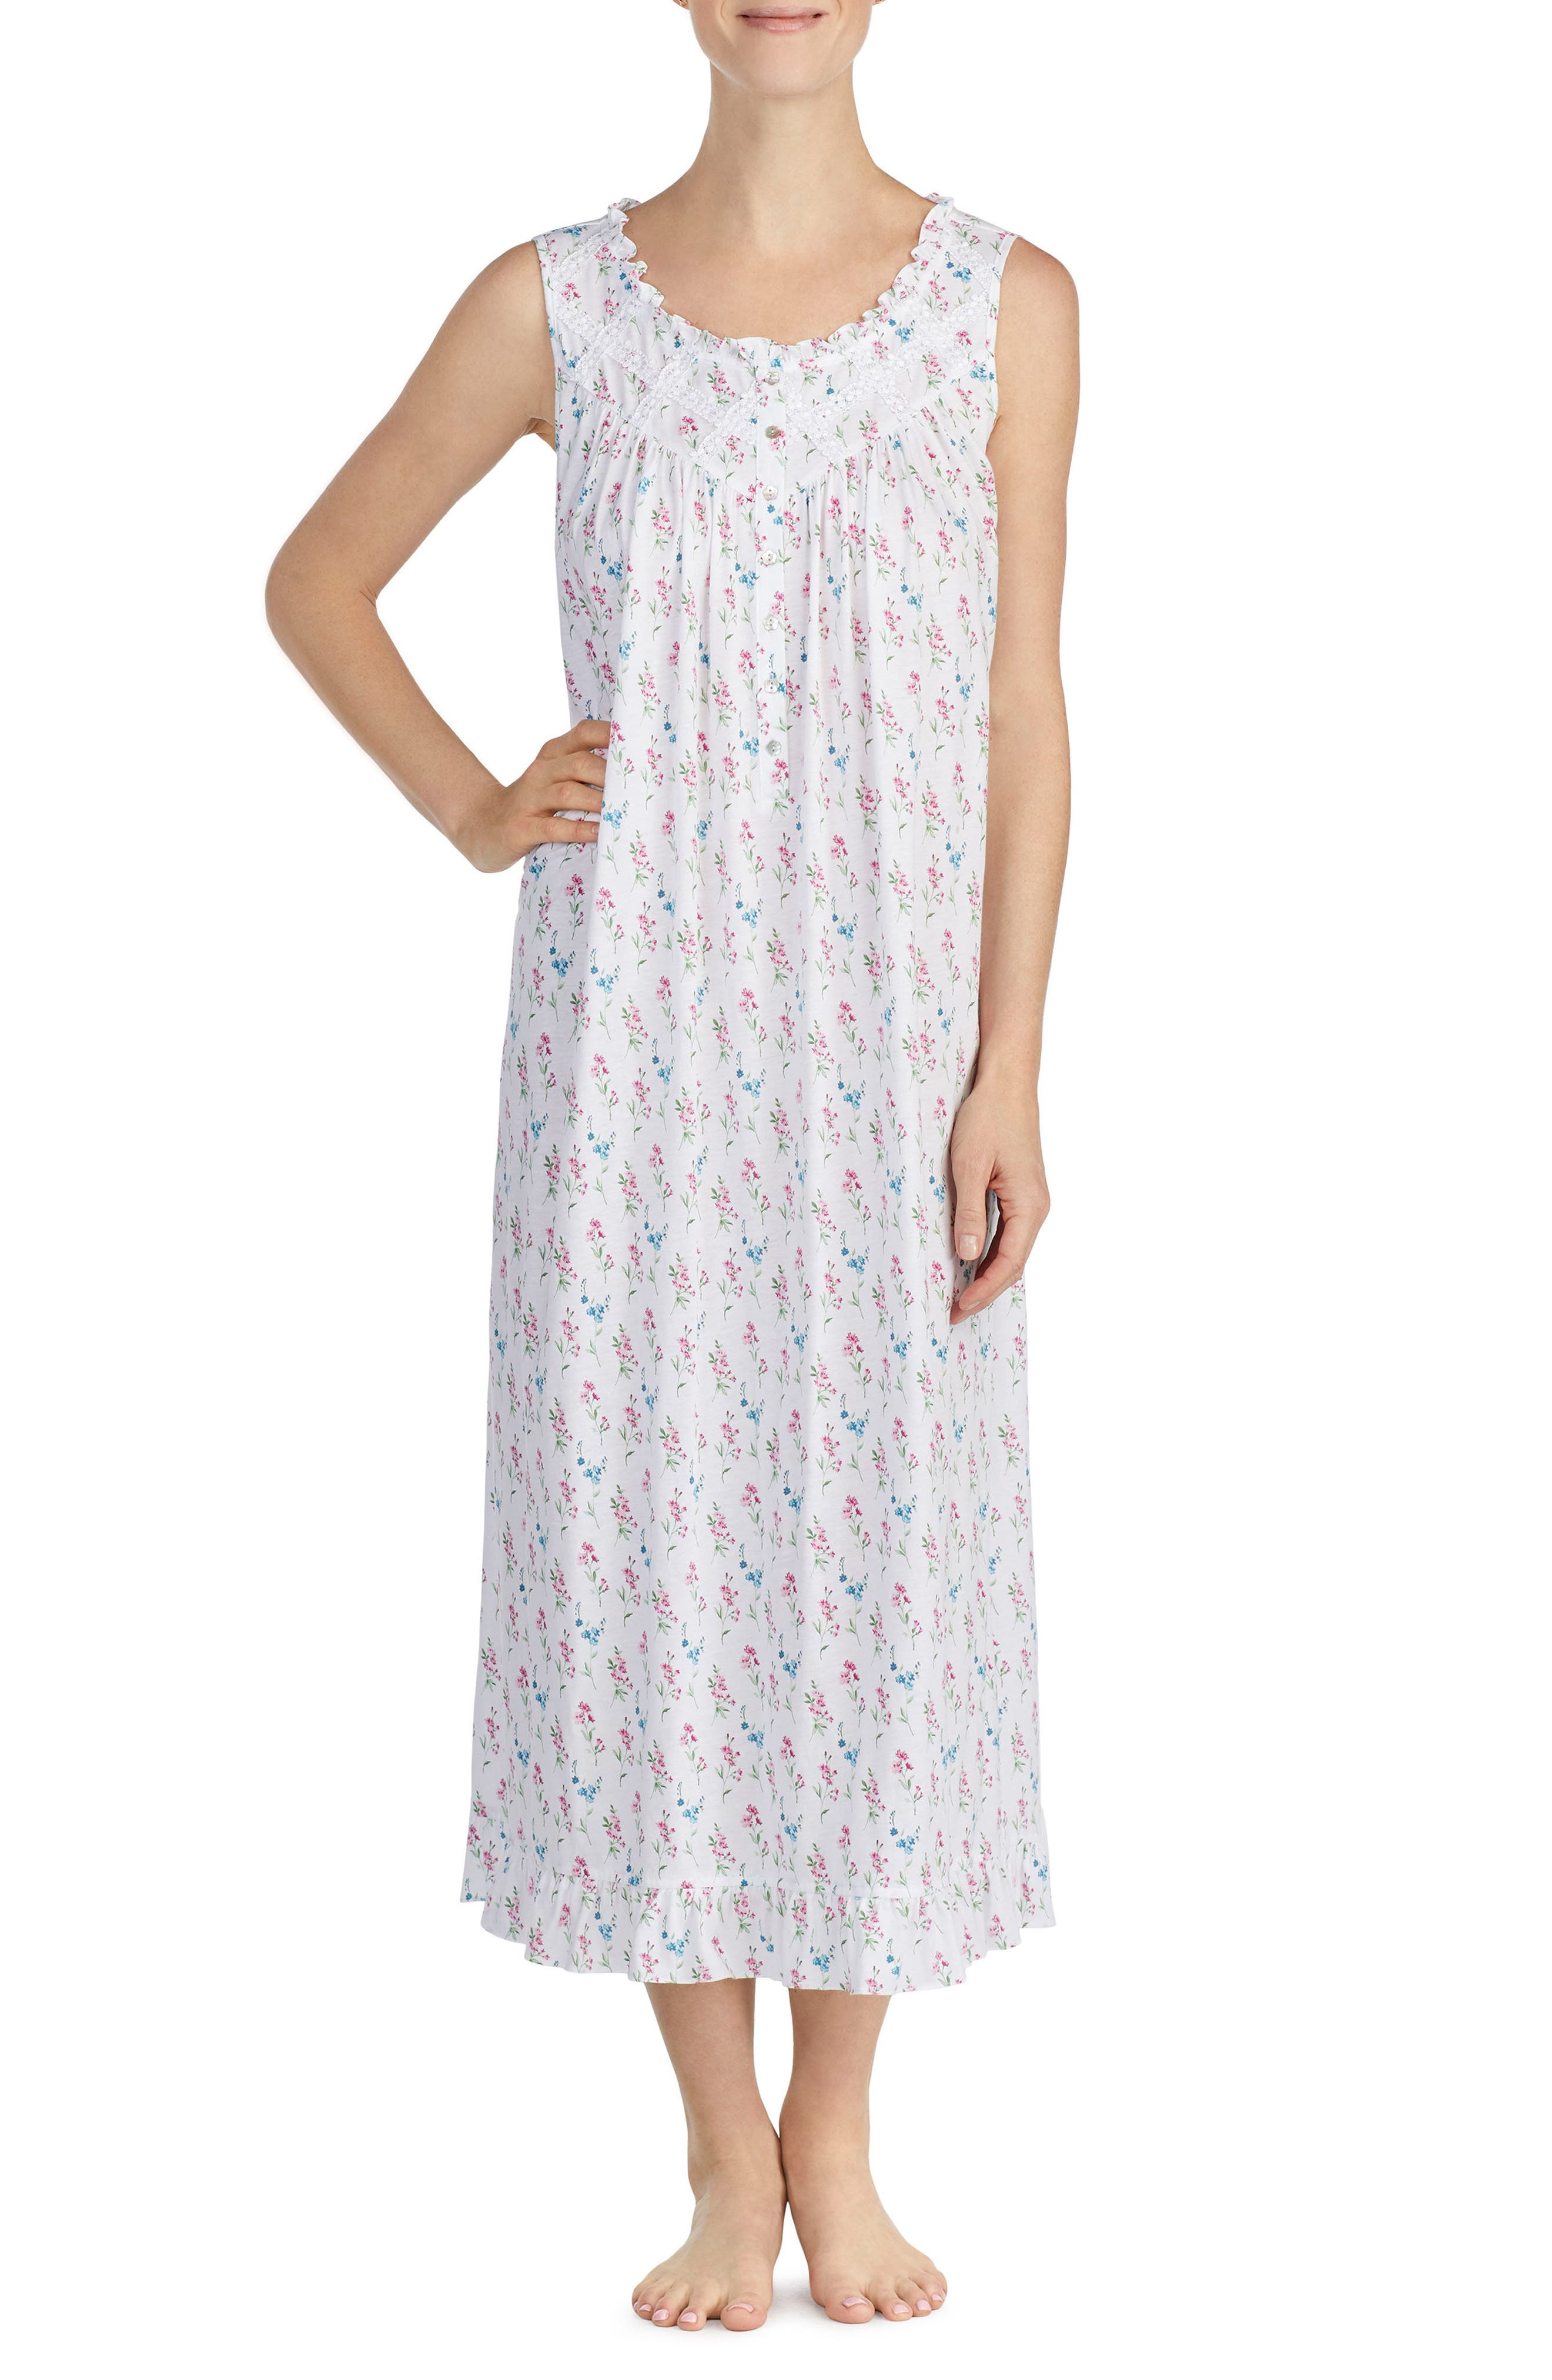 Long Nightgown,                             Main thumbnail 1, color,                             White Grnd Multi Fall Floral